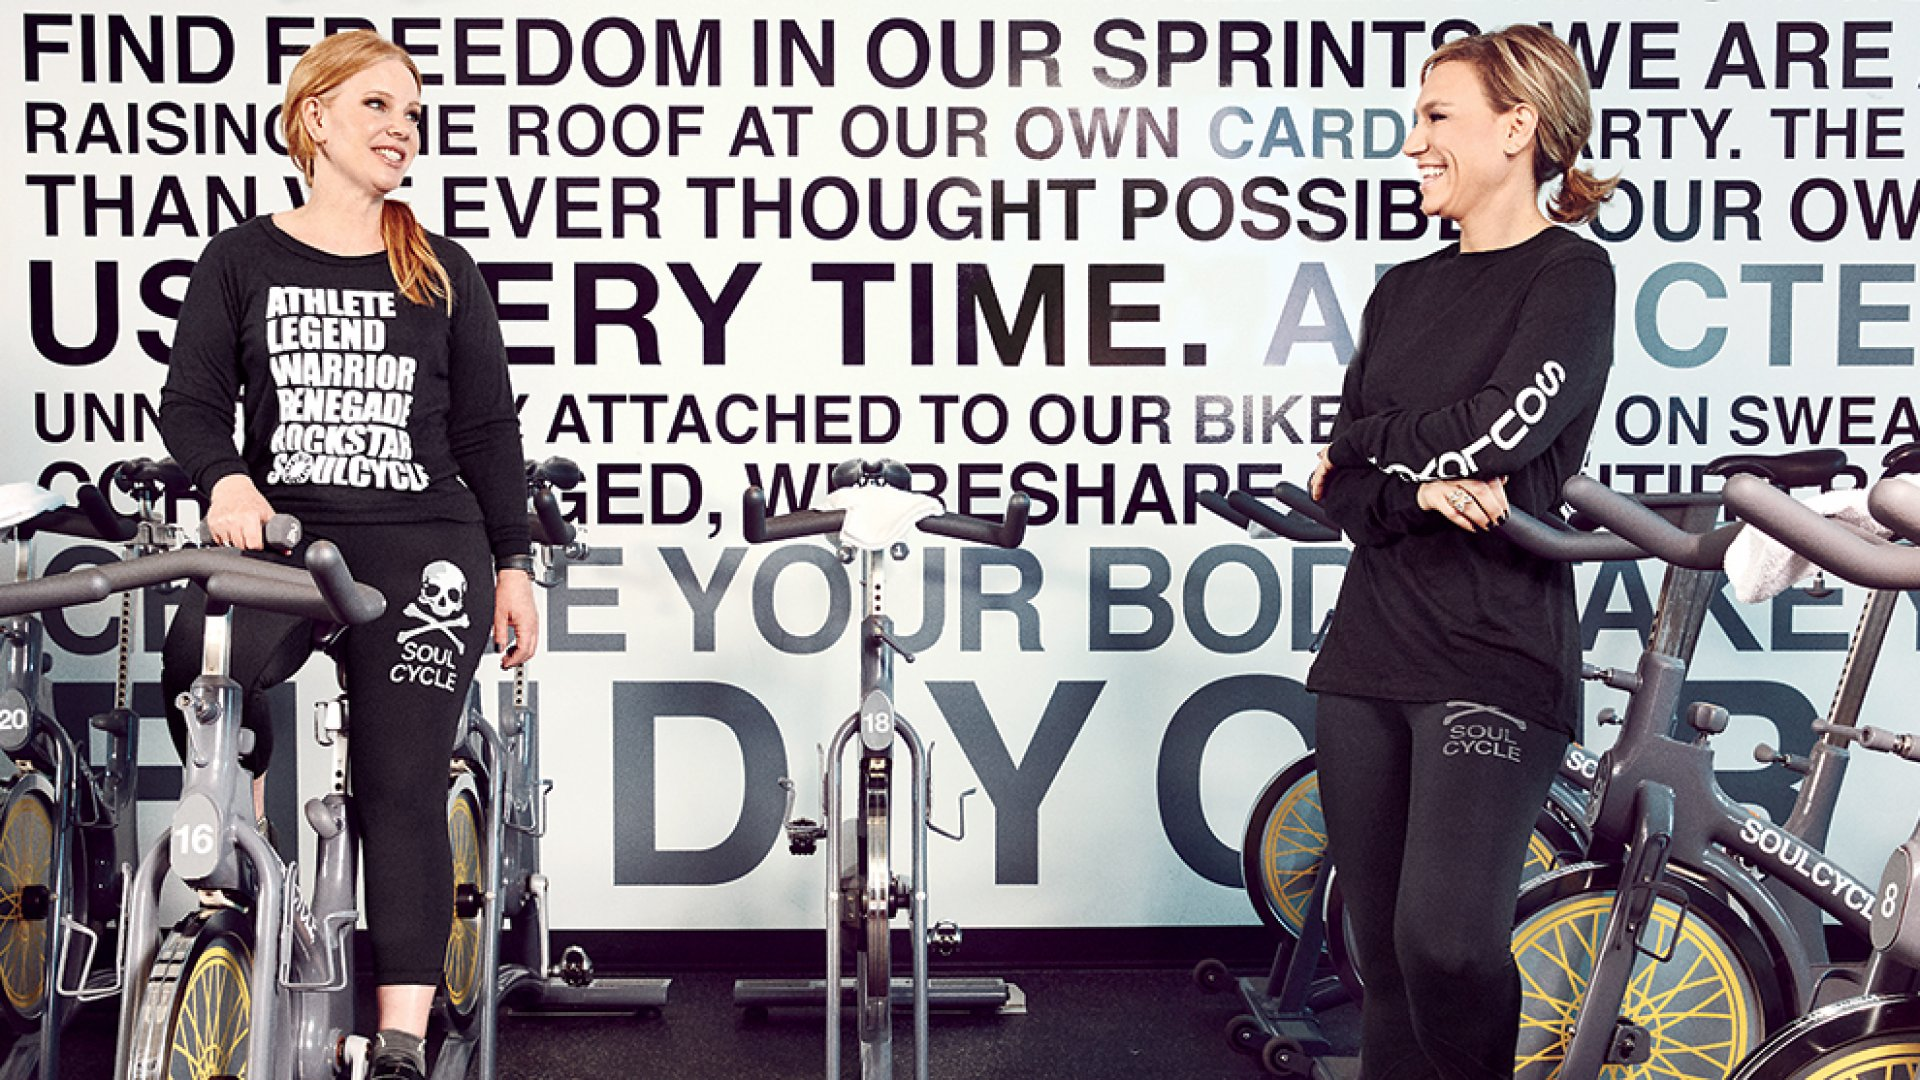 Elizabeth Cutler (left) and Julie Rice practice what they preach at a SoulCycle class in Manhattan.